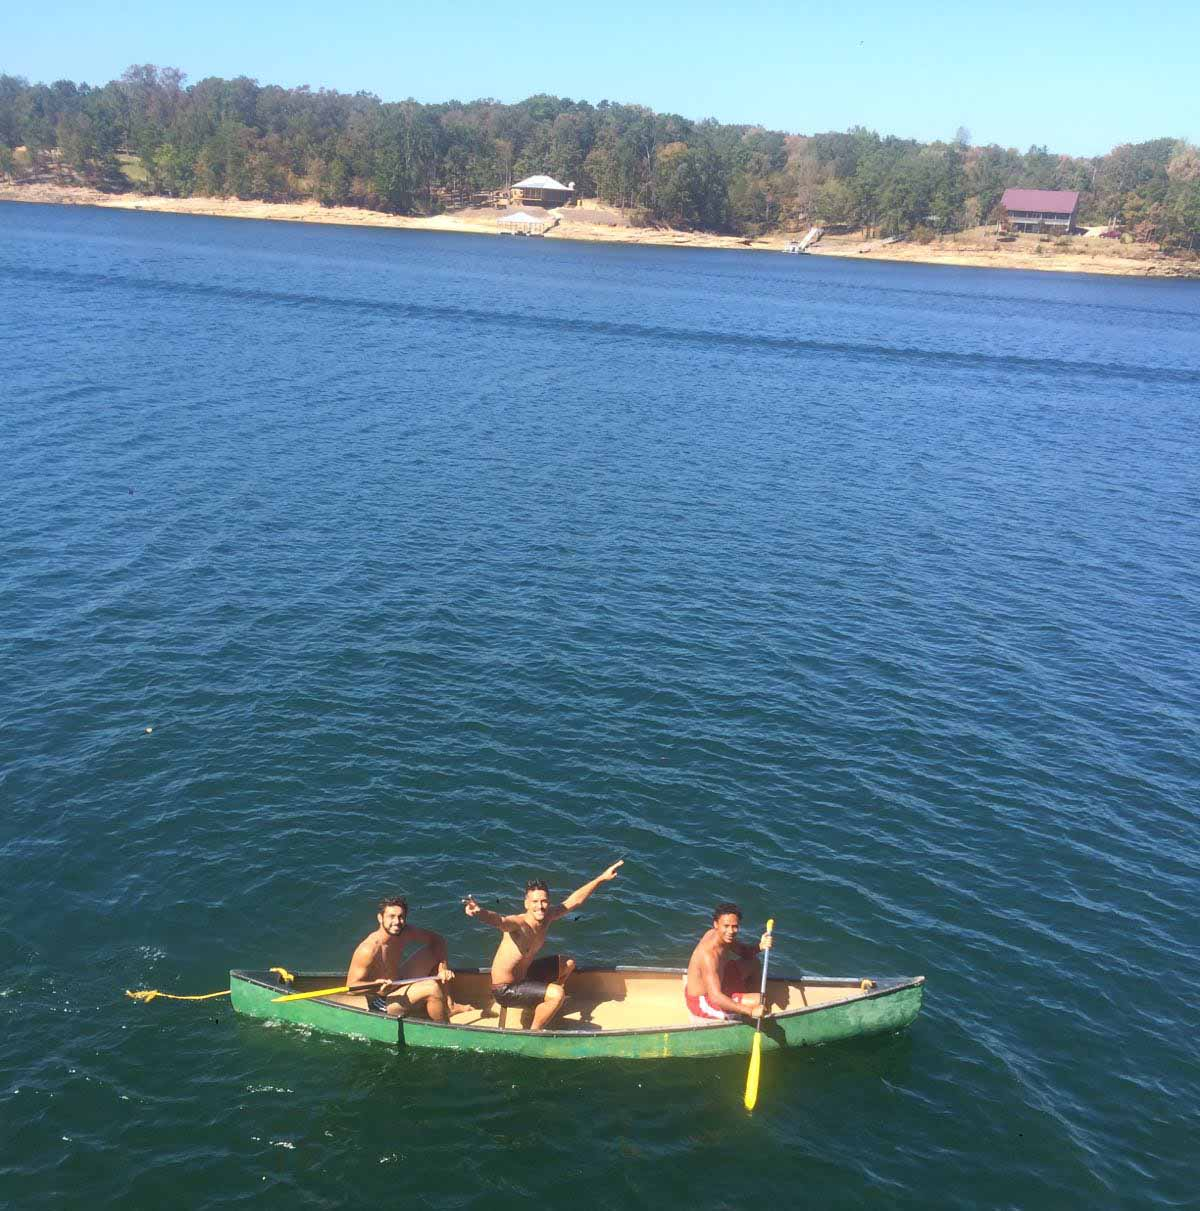 Men's Soccer on canoe in Smith Lake